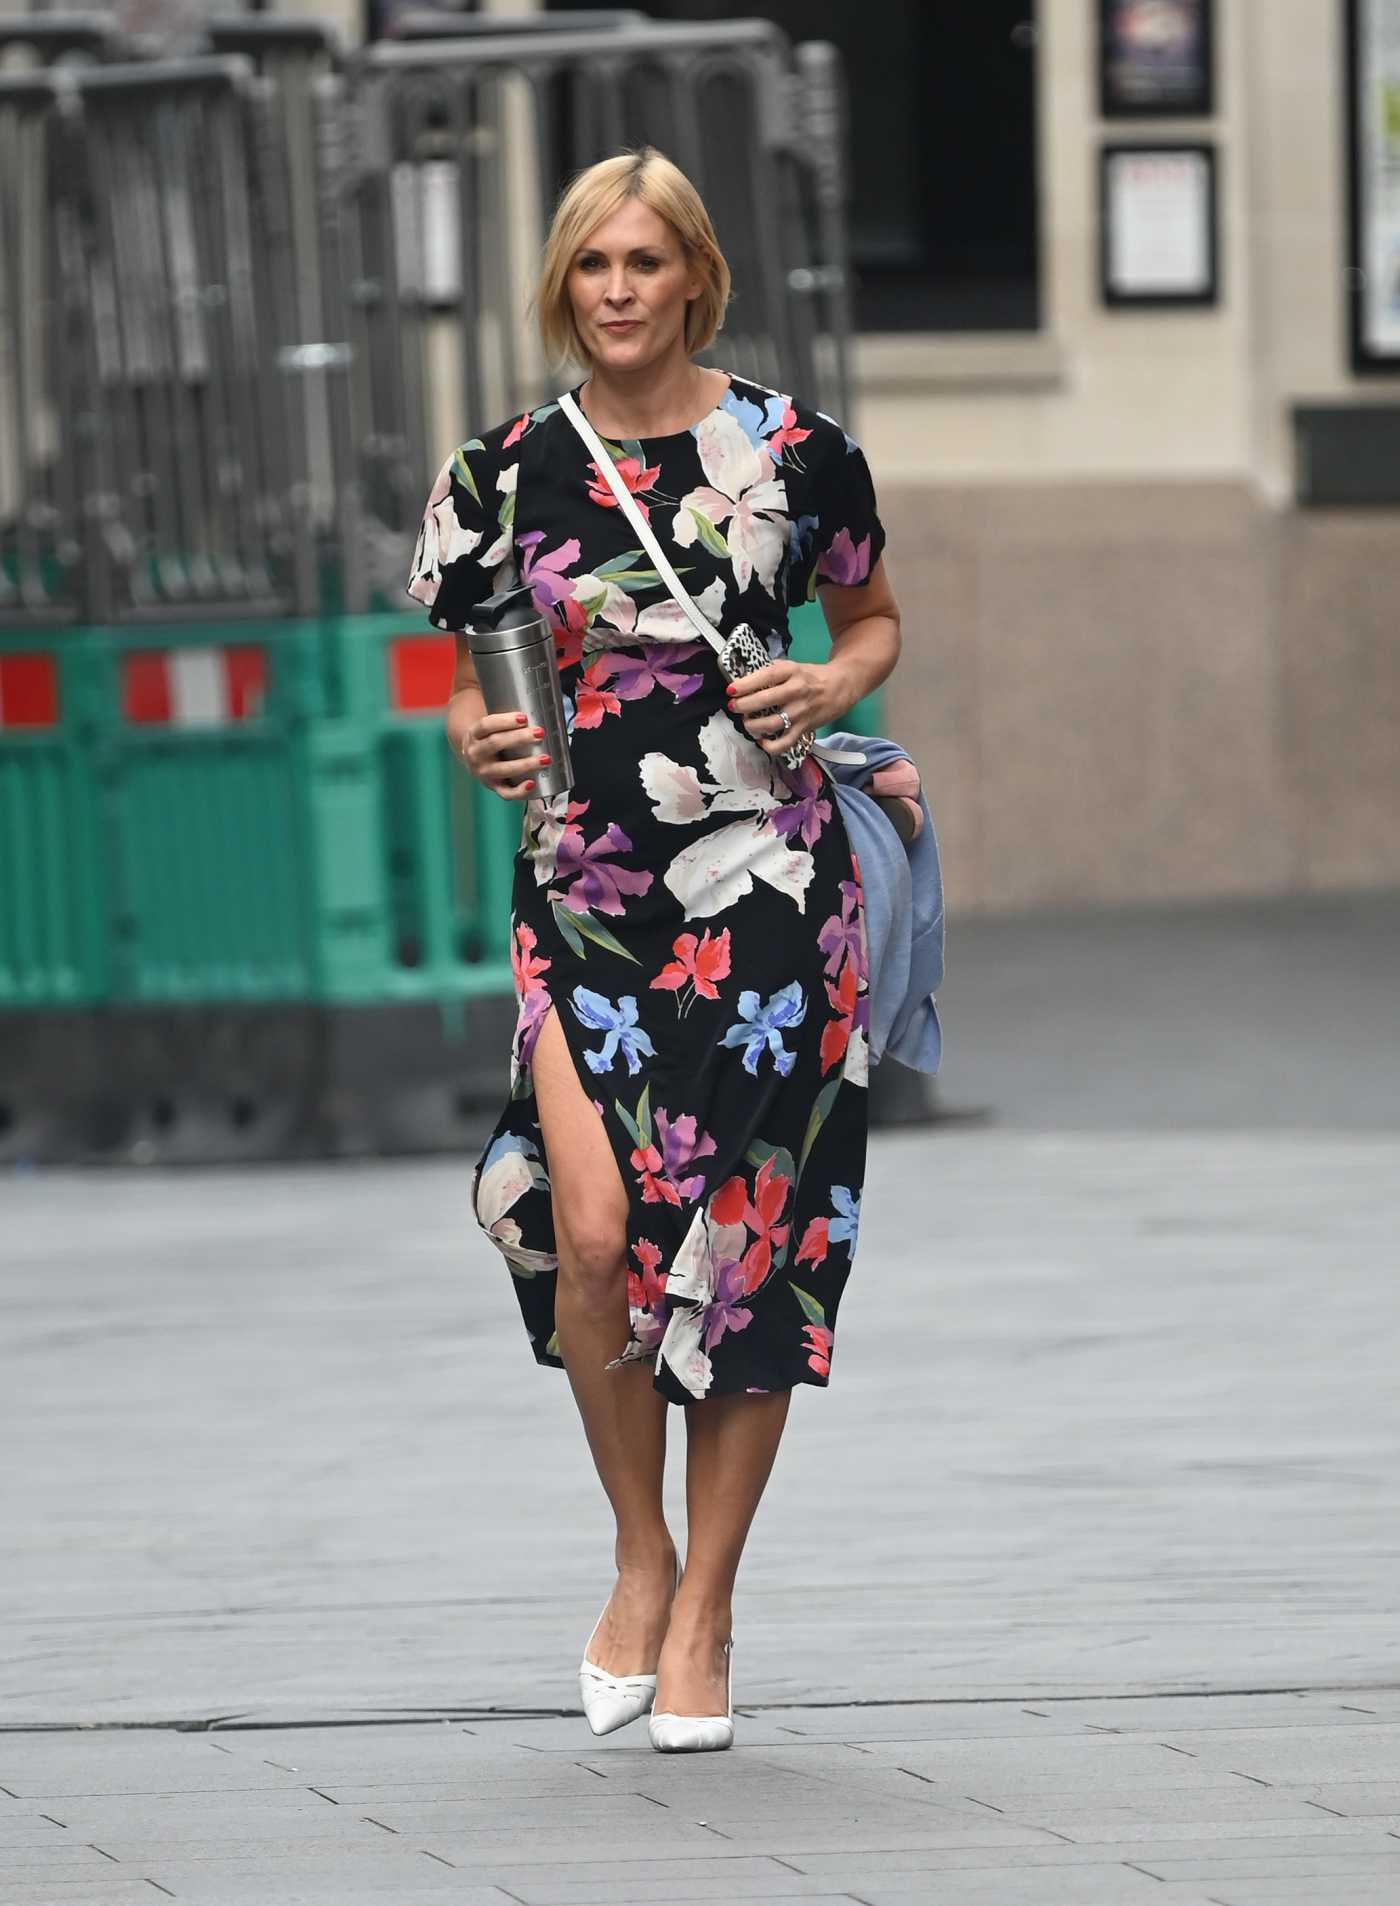 Jenni Falconer in a Flowery Summer Dress Leaves the Global Radio in London 08/20/2020